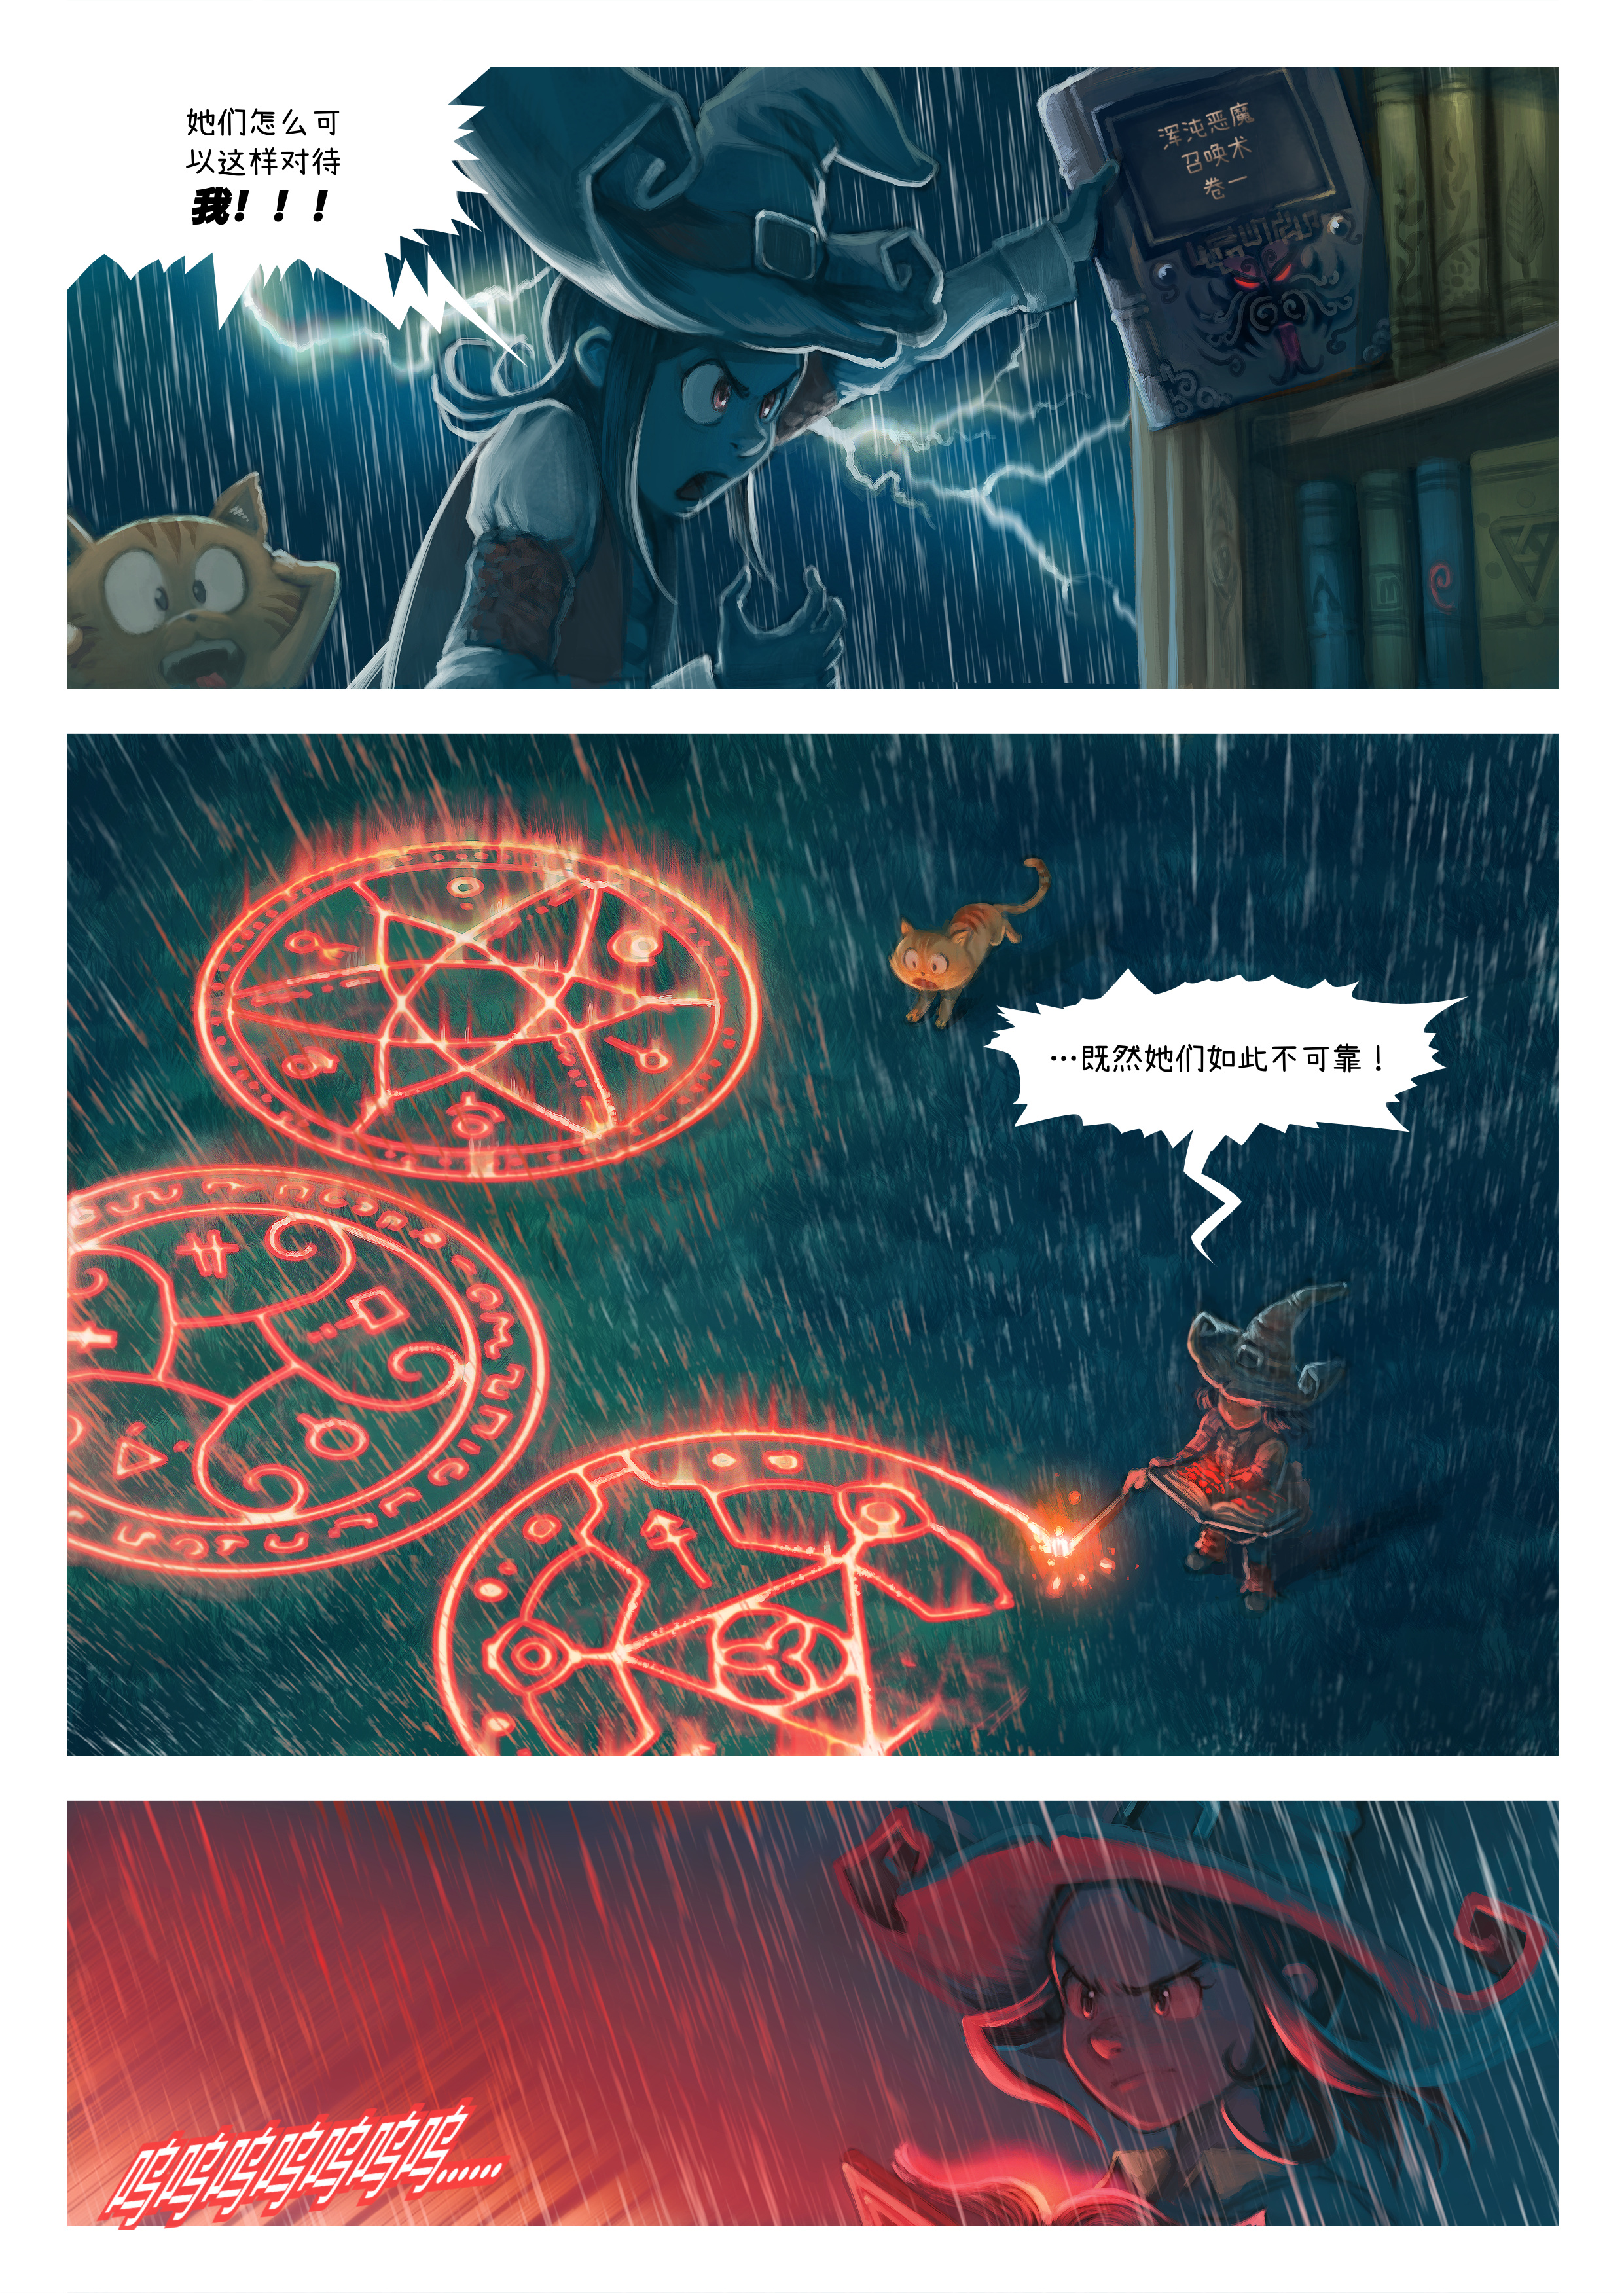 A webcomic page of Pepper&Carrot, 漫画全集 8 [cn], 页面 5